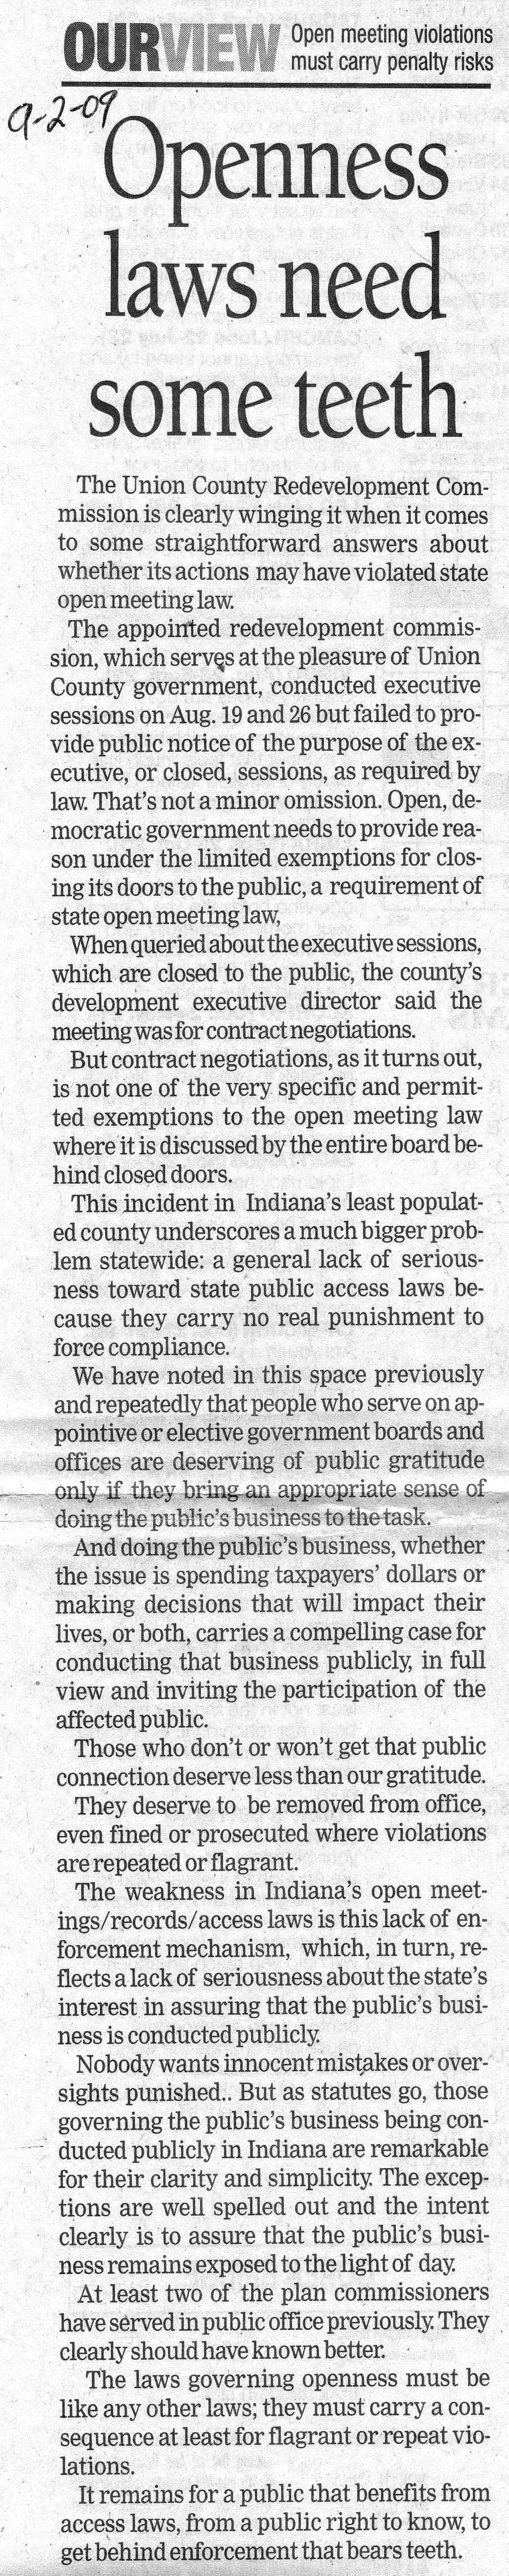 Openness Laws Need Some Teeth - September 2, 2009